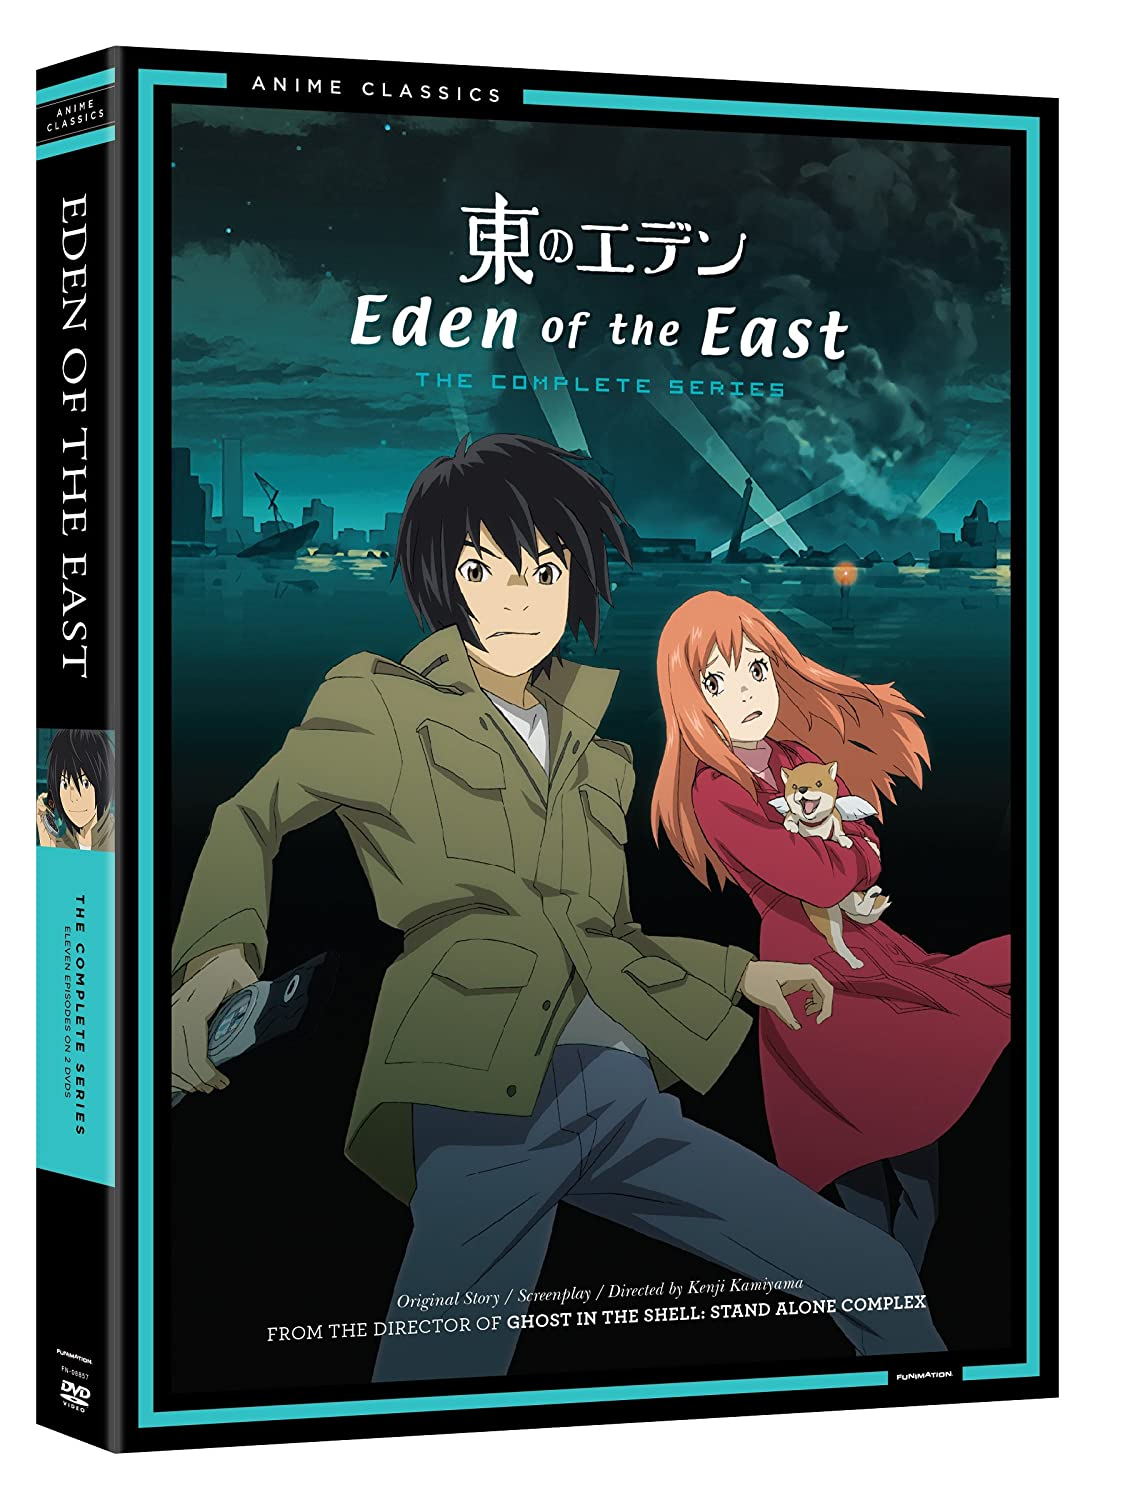 Eden of the East – DVD Anime Classics (Dual Audio)